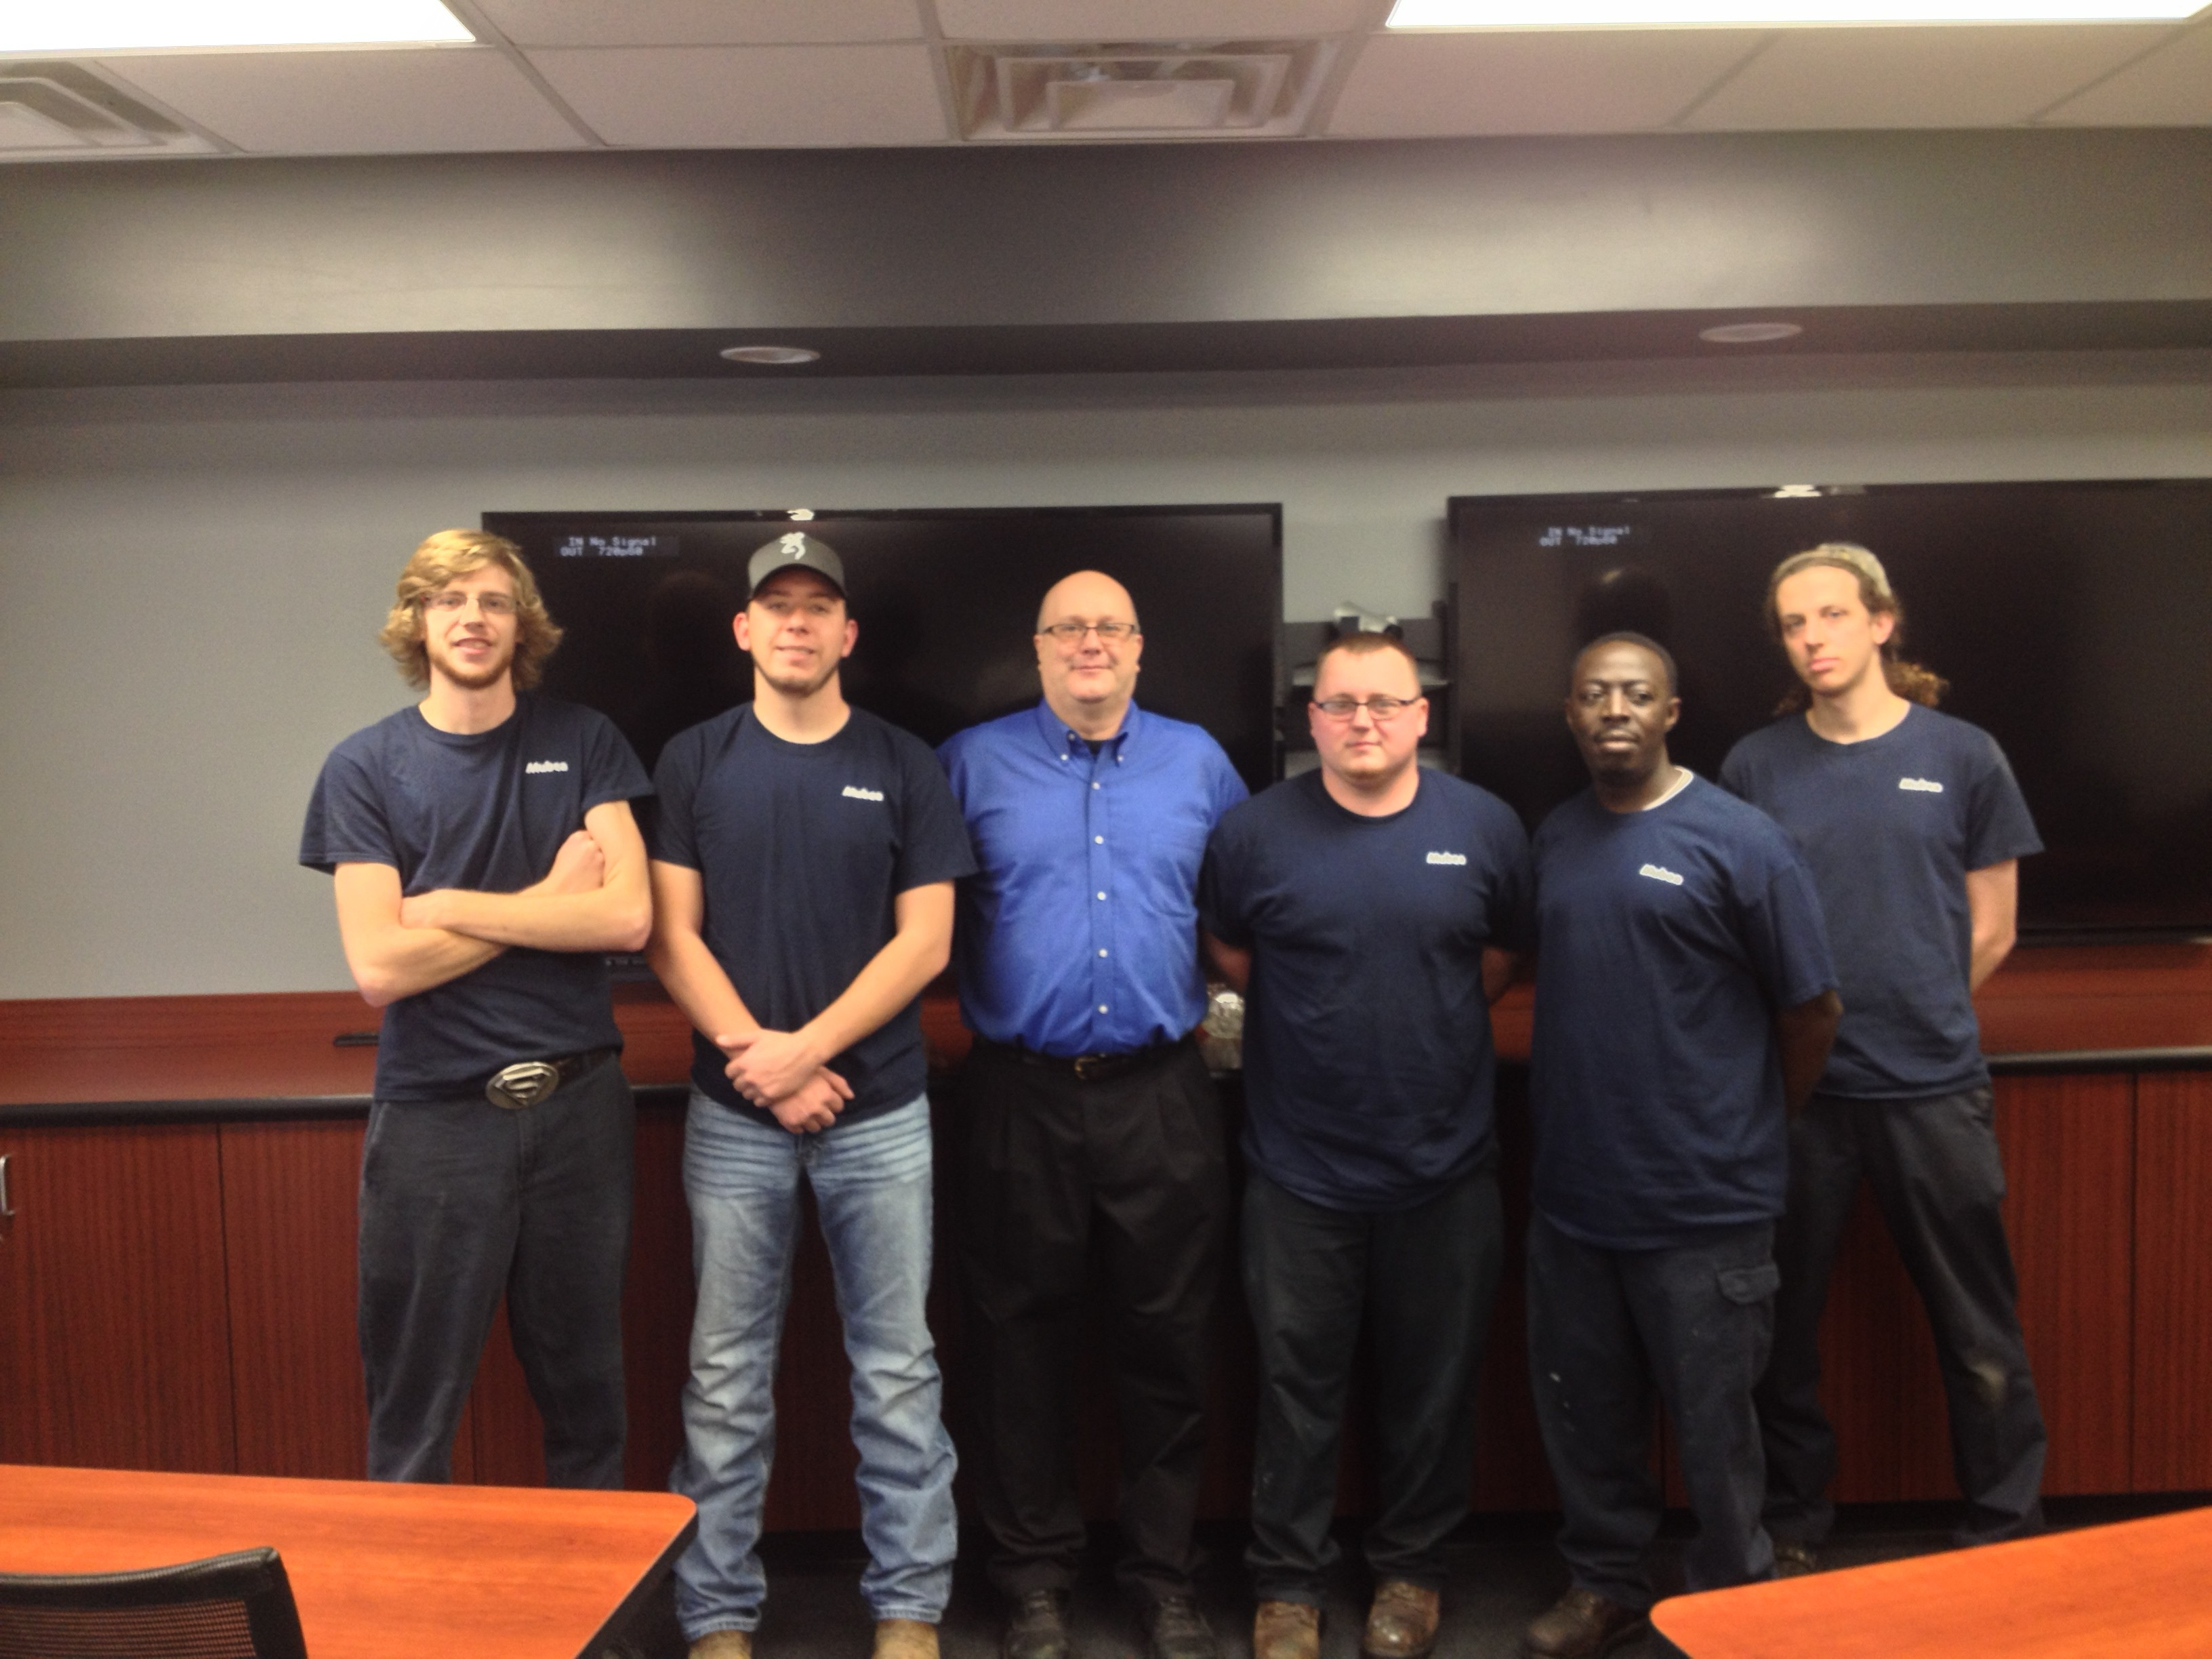 Mubea North AMerica apprenticeship/training manager Drew Farris (light blue shirt) with apprentices (left to right) Jesse Phillips, Lance Purcell, Nick Eubanks, Colin Chazuka and Matt Ryan